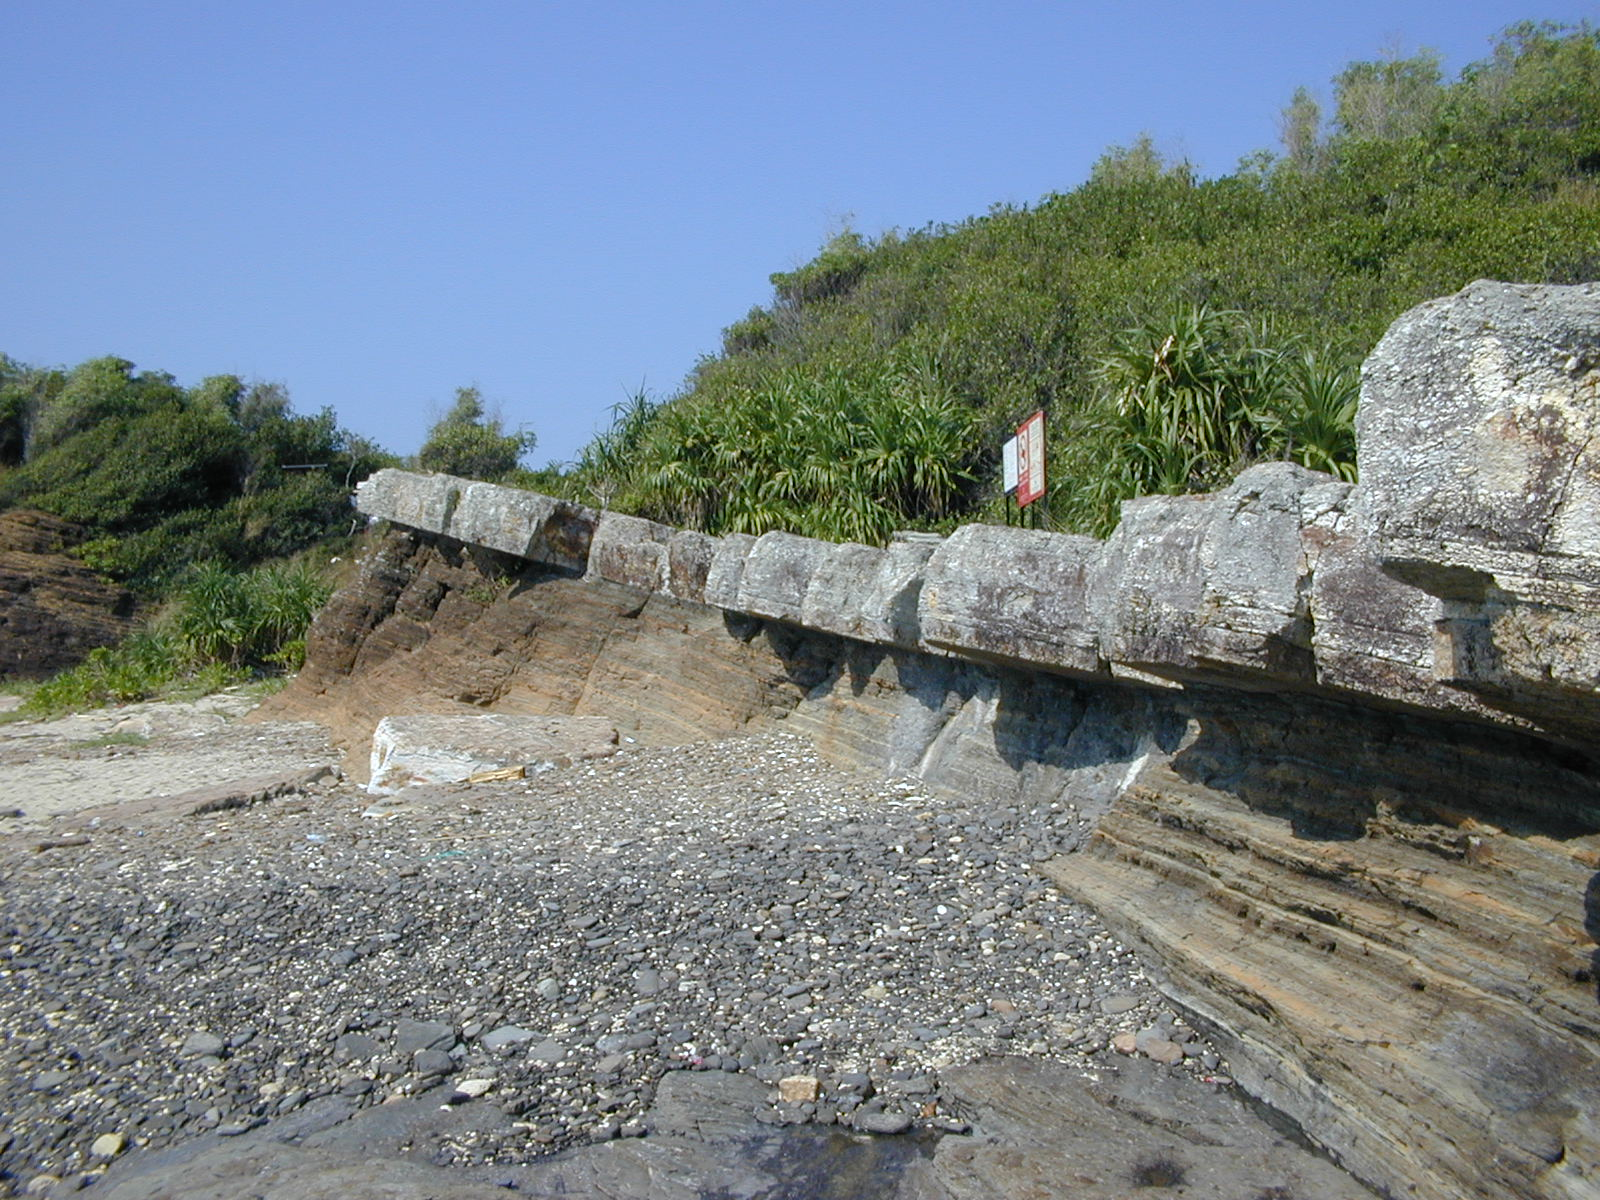 A grey layer of chert lies on top of brown layers of alternating mudstone and siltstone on Tung Ping Chau, Hong Kong SAR.. The rocks are part of the Ping Chau Formation of Paleogene age. This specific location is called Lung Lok Shui (龍落水). Photo taken on November 23, 2003.